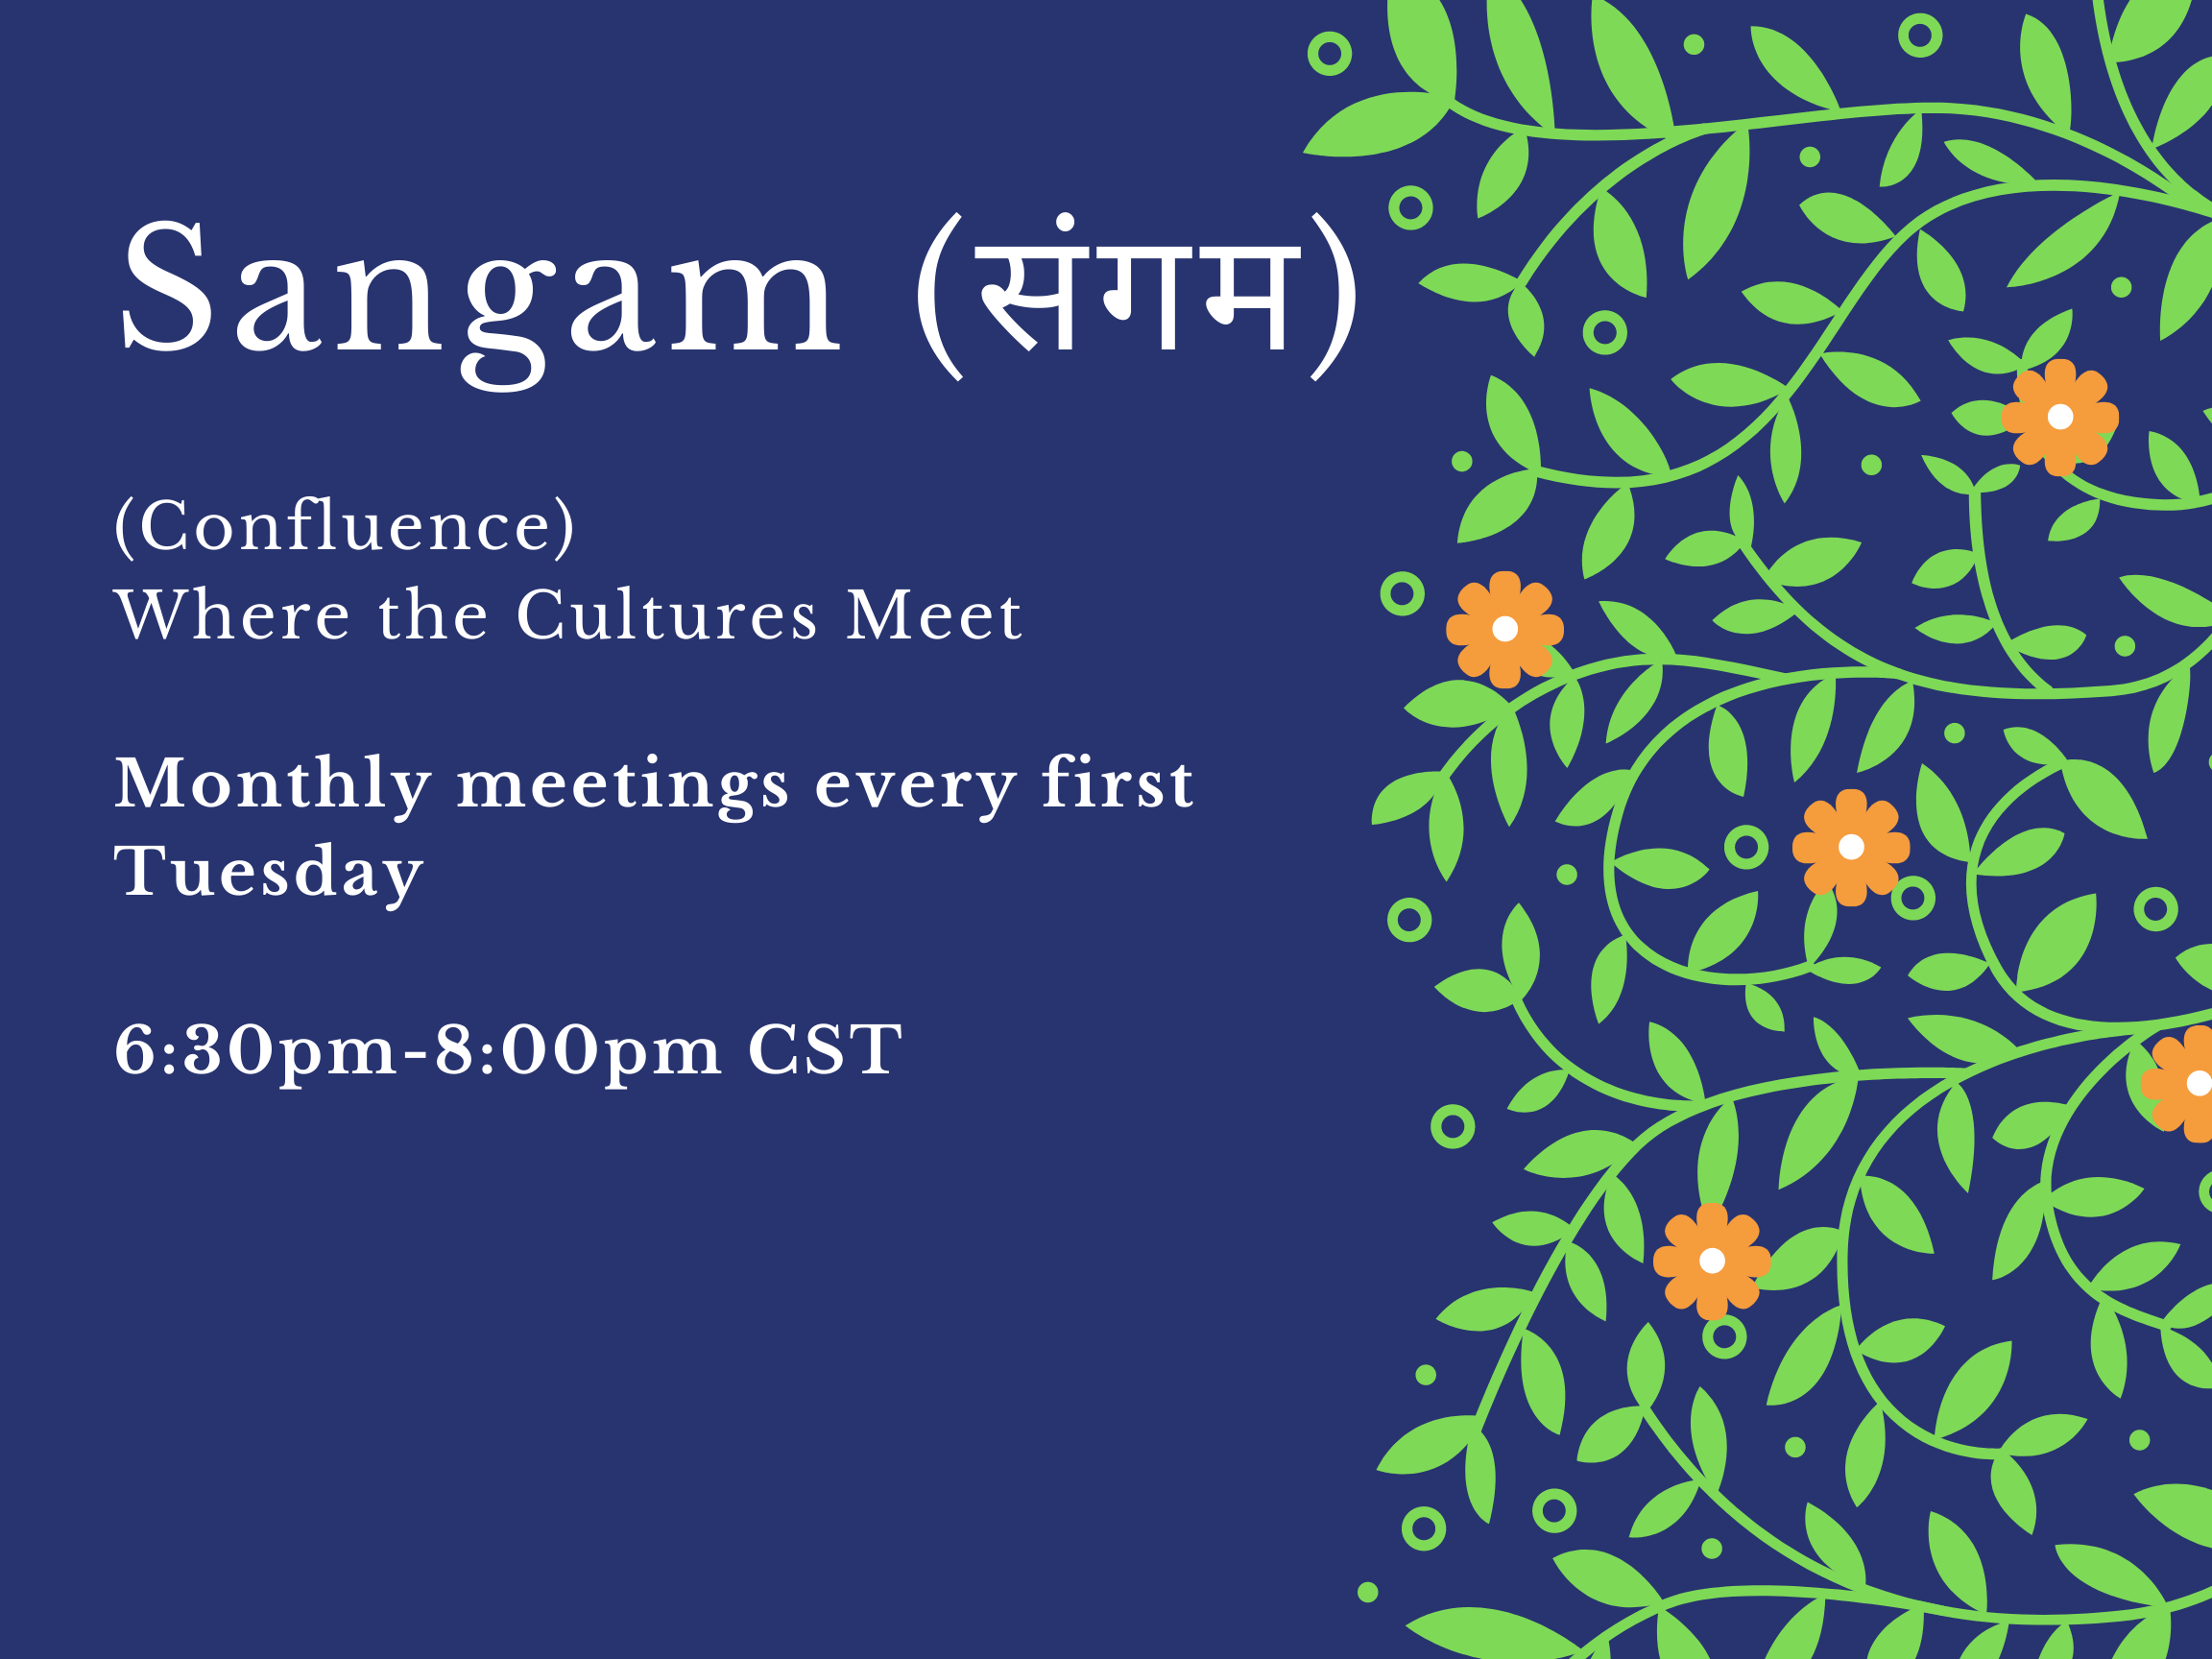 SANGAM: Monthly meetings every first Tuesday, 6:30pm to 8:00pm CST.